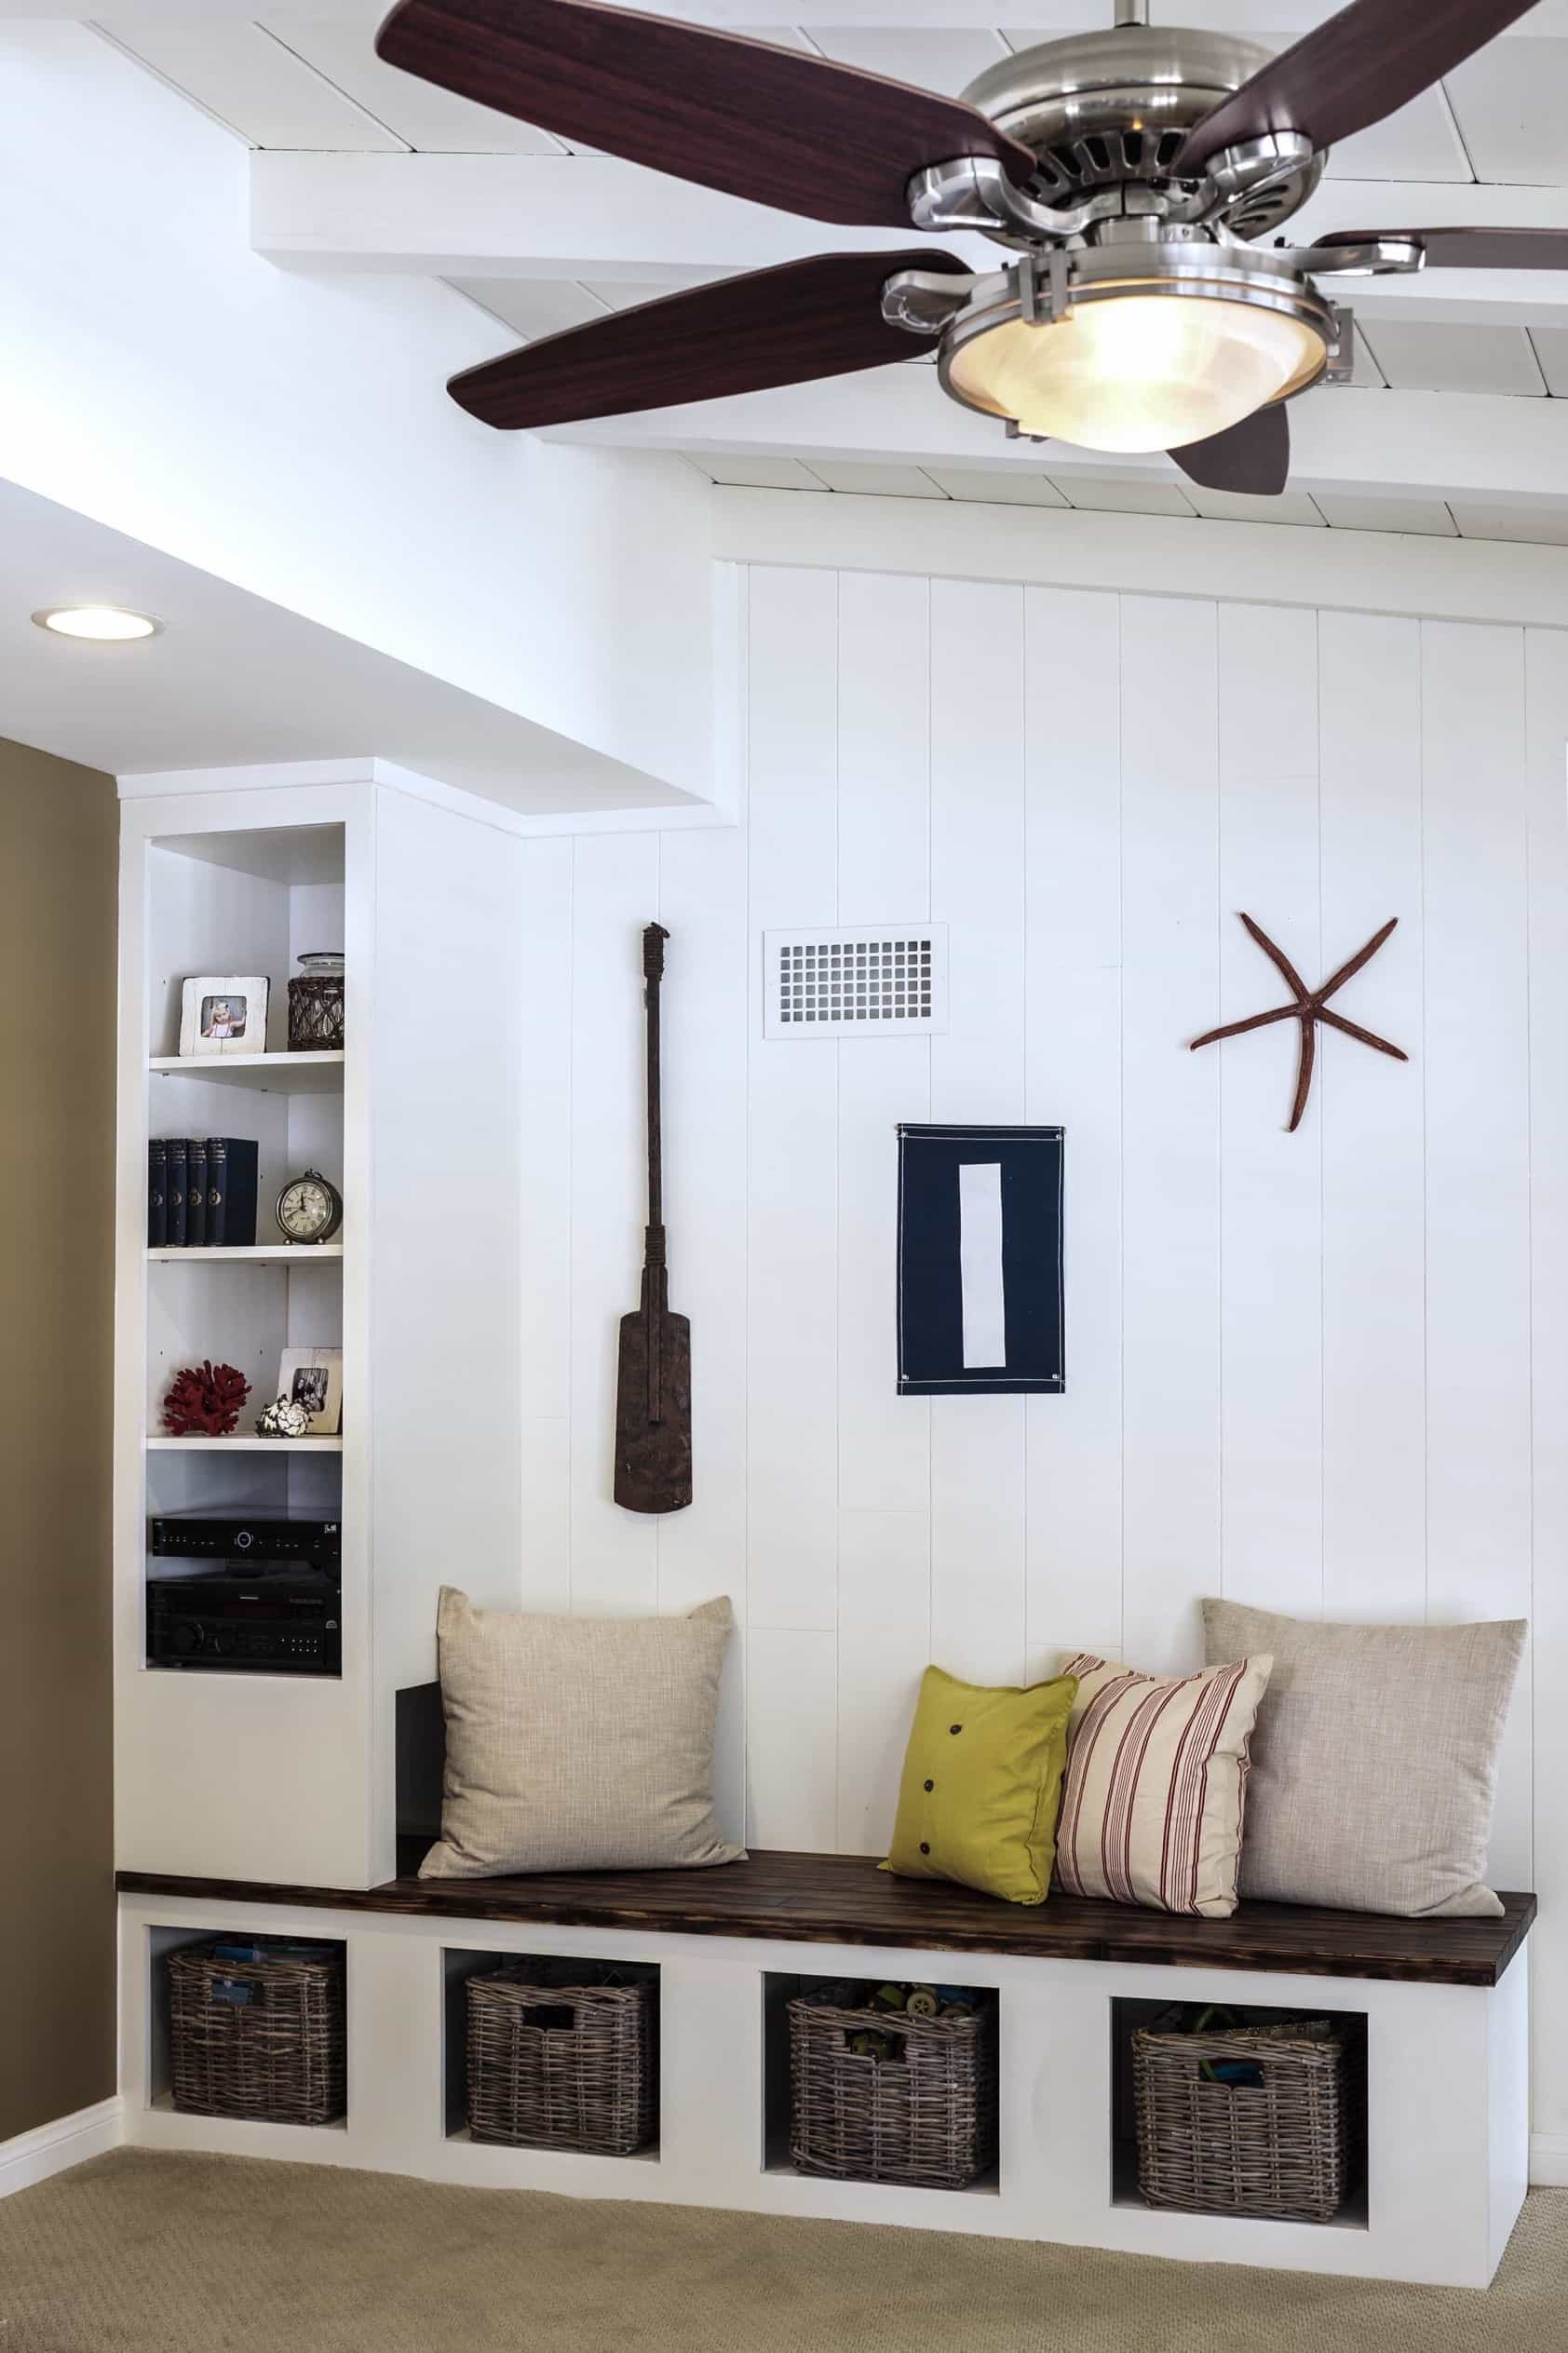 Featured Image of Built In Bench Mudroom Sitting Area